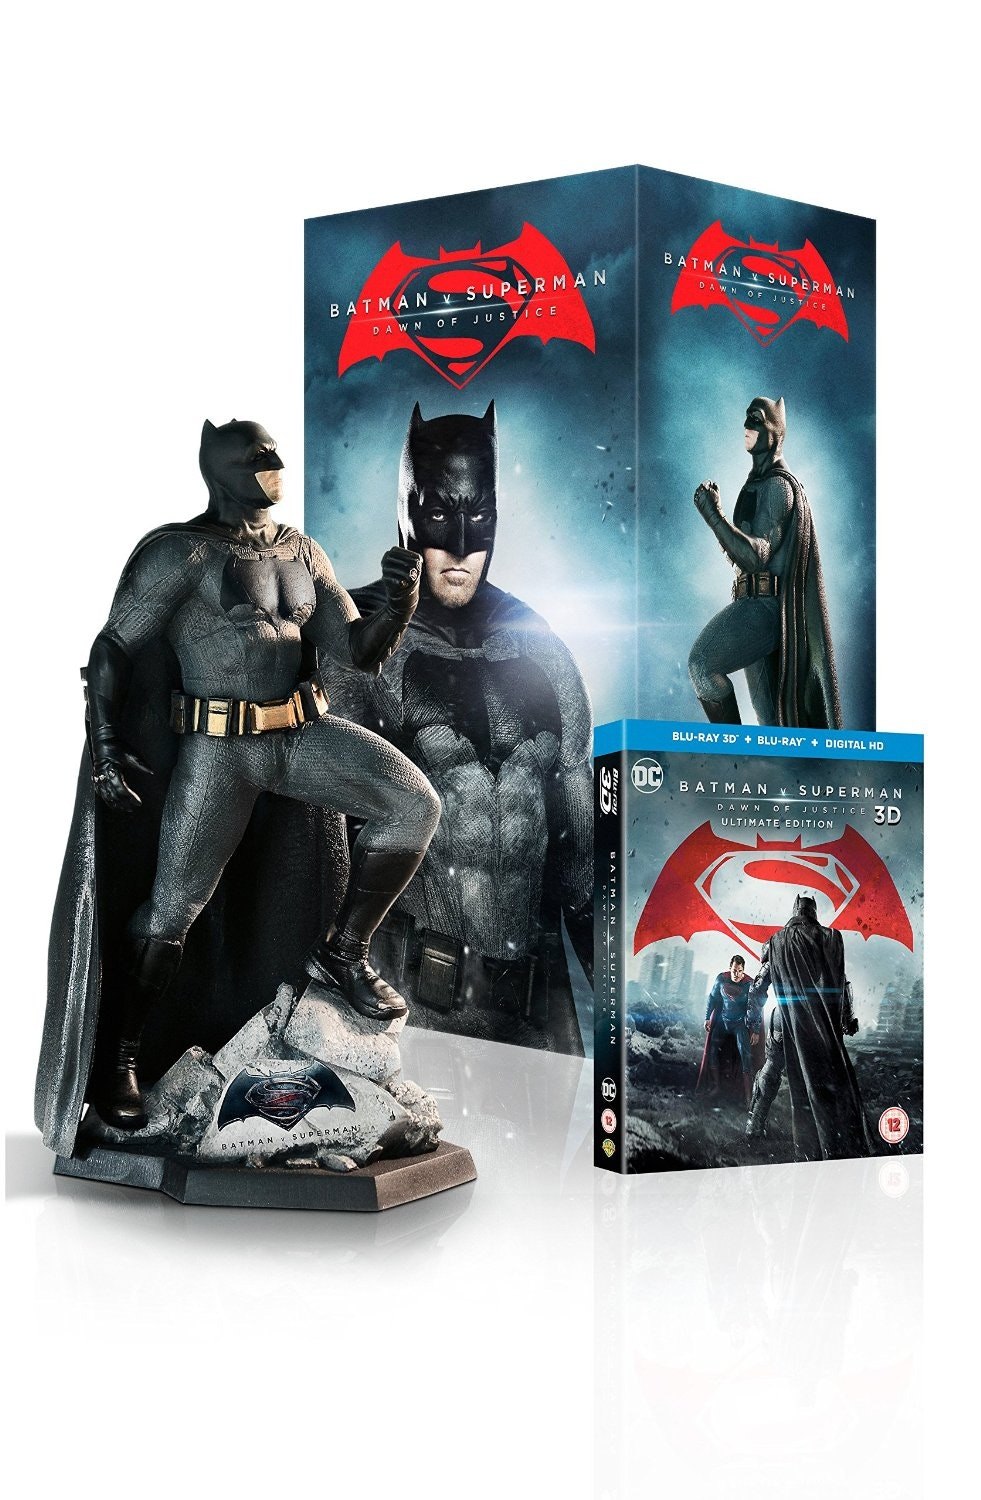 BATMAN V SUPERMAN: DAWN OF JUSTICE prize bundle sweepstakes